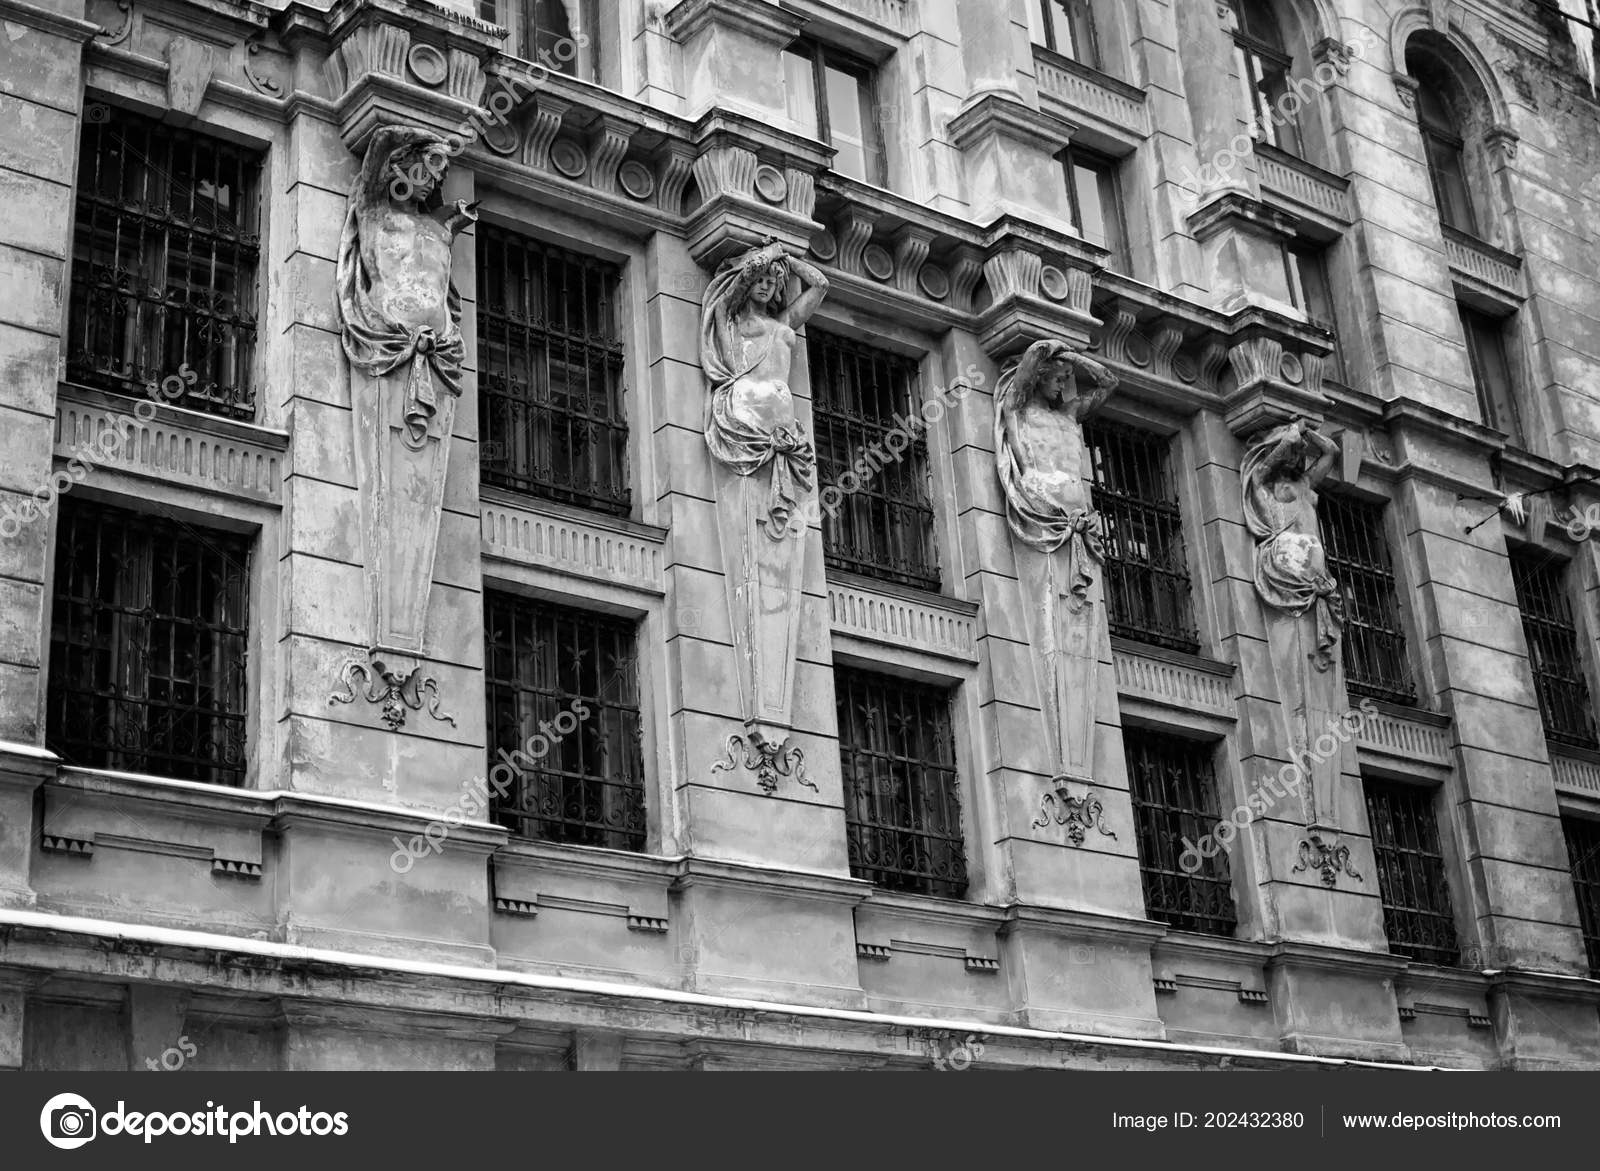 Gloomy dark house with black windows oldfashioned abandoned building ancient sculptures holding architectural elements iron bars black and white photo